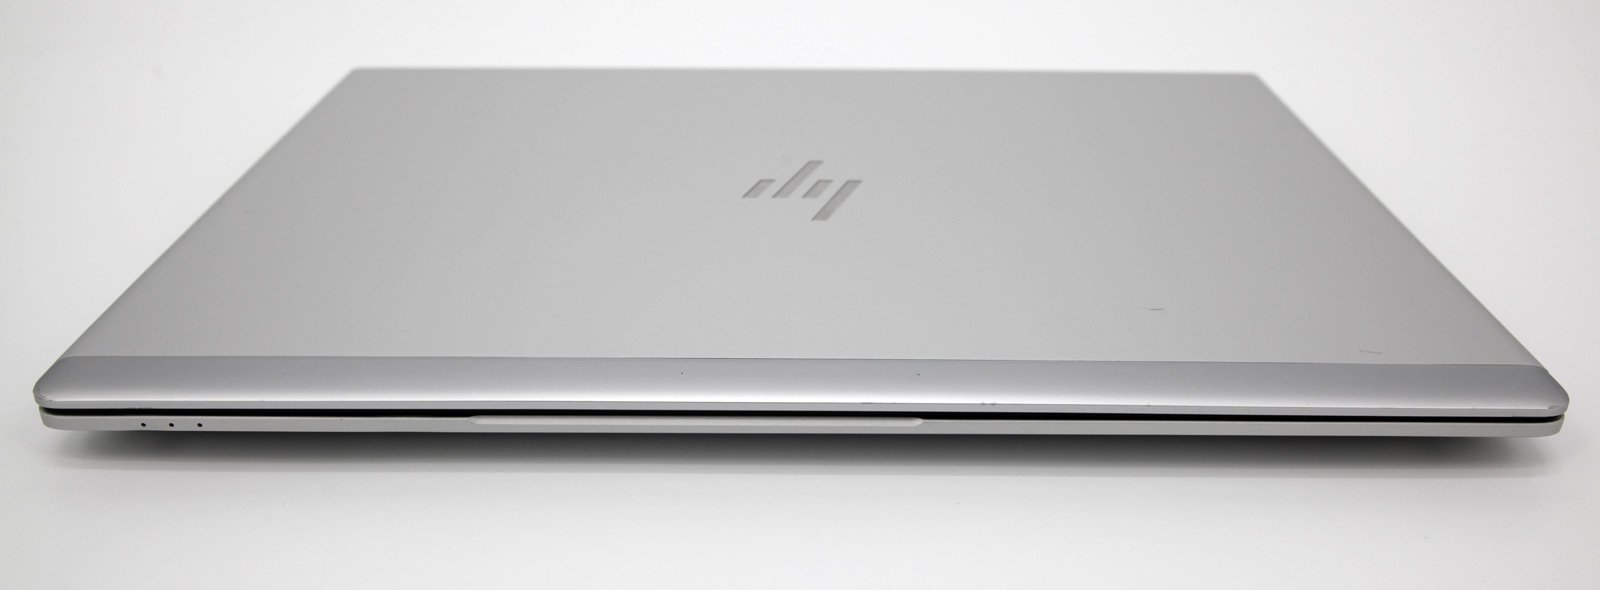 HP EliteBook 745 G5 Laptop: AMD Ryzen 7, 16GB RAM, 256GB SSD, Privacy, Warranty - CruiseTech